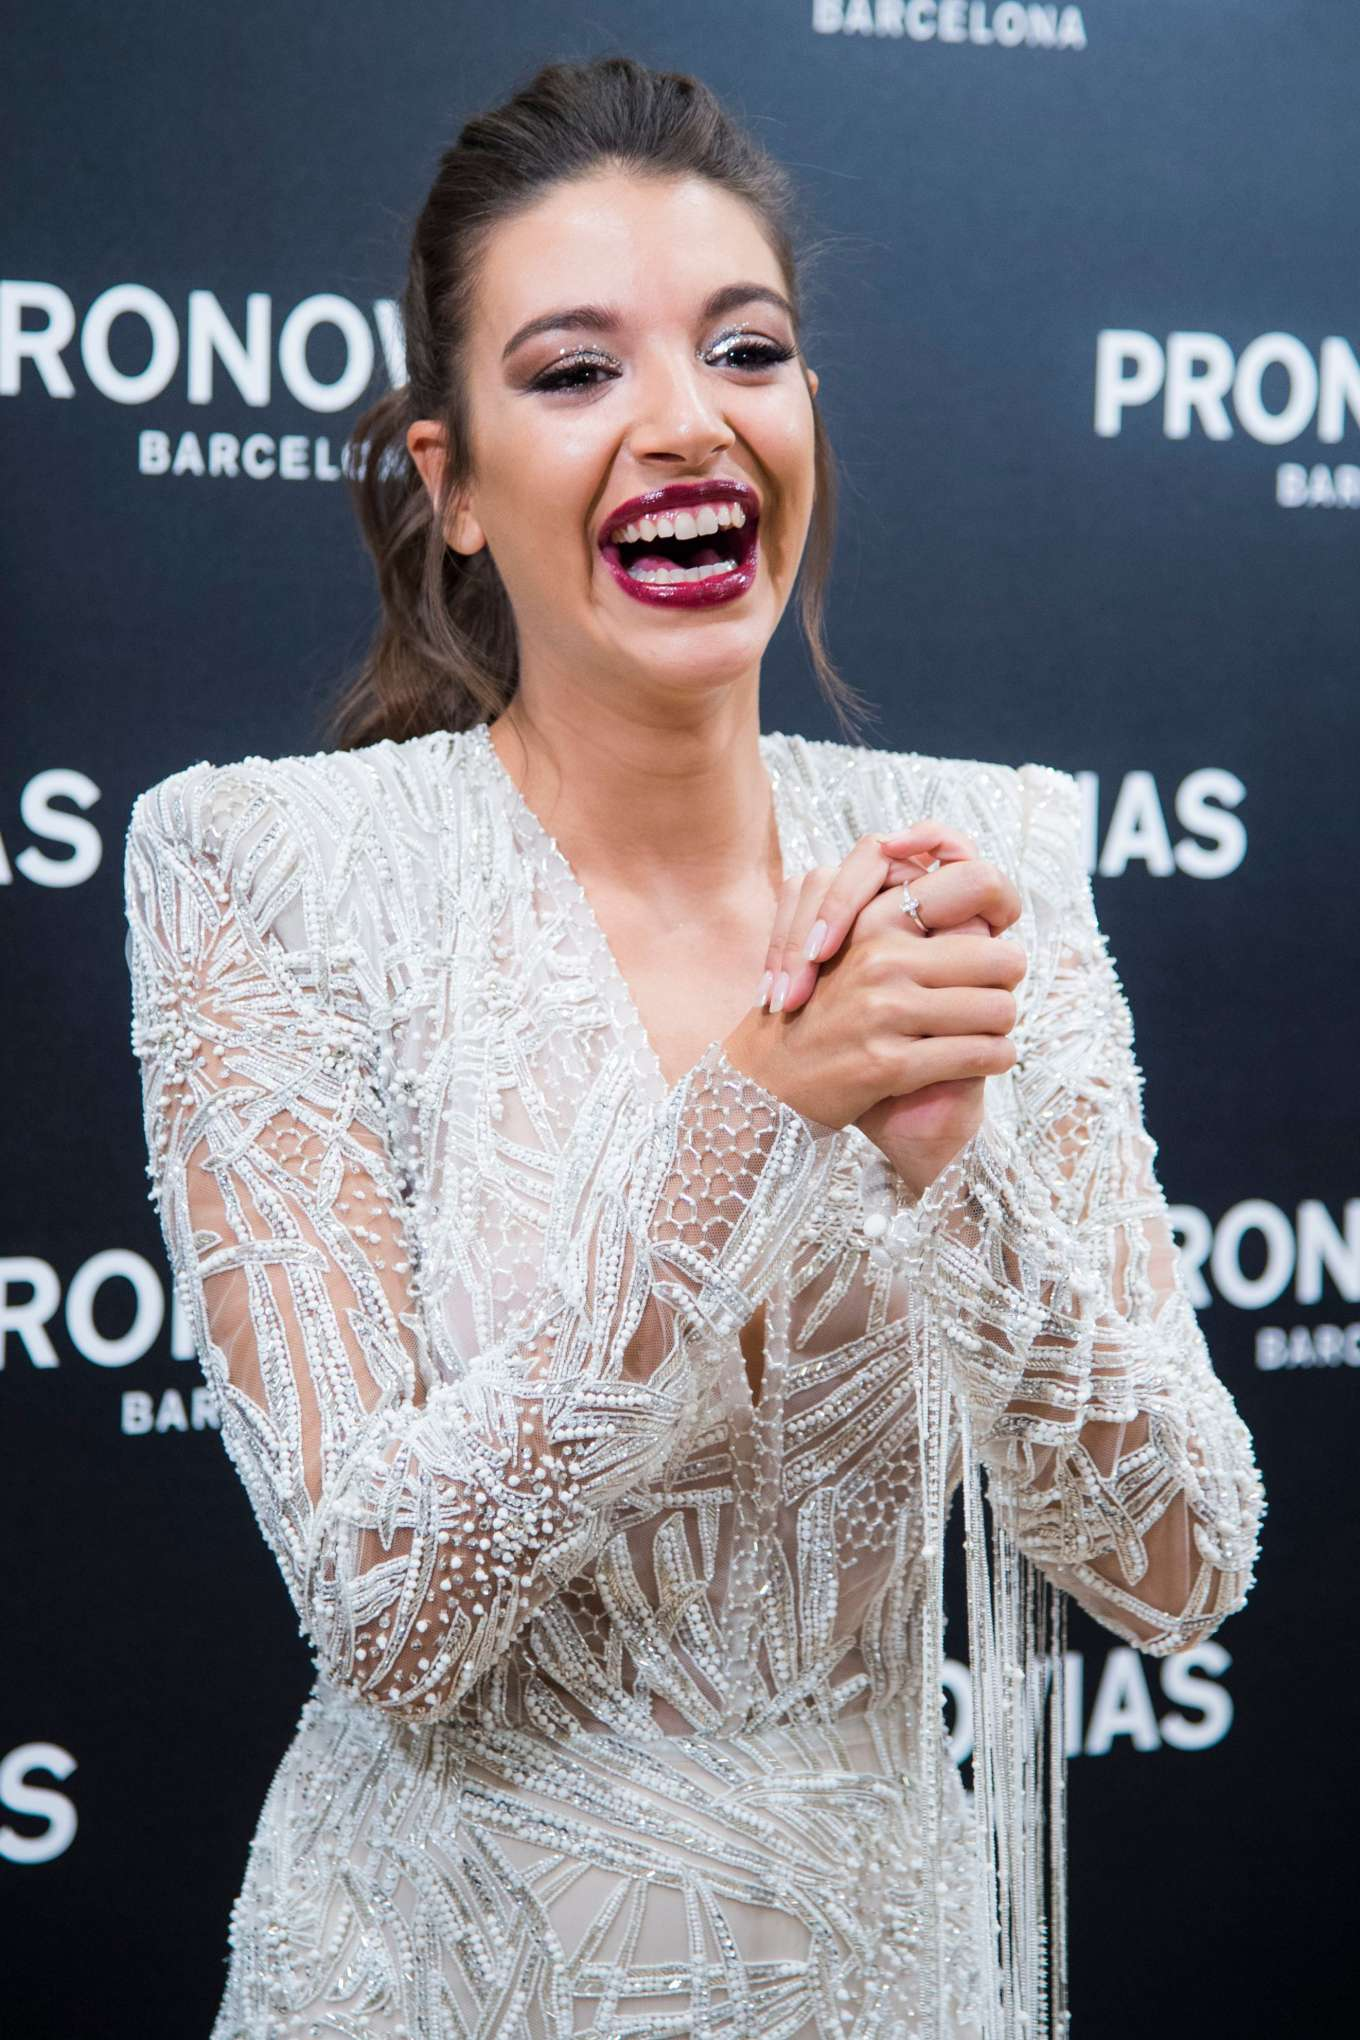 Ana Guerra 2019 : Ana Guerra – Pronovias Collection Photocall in Madrid-05